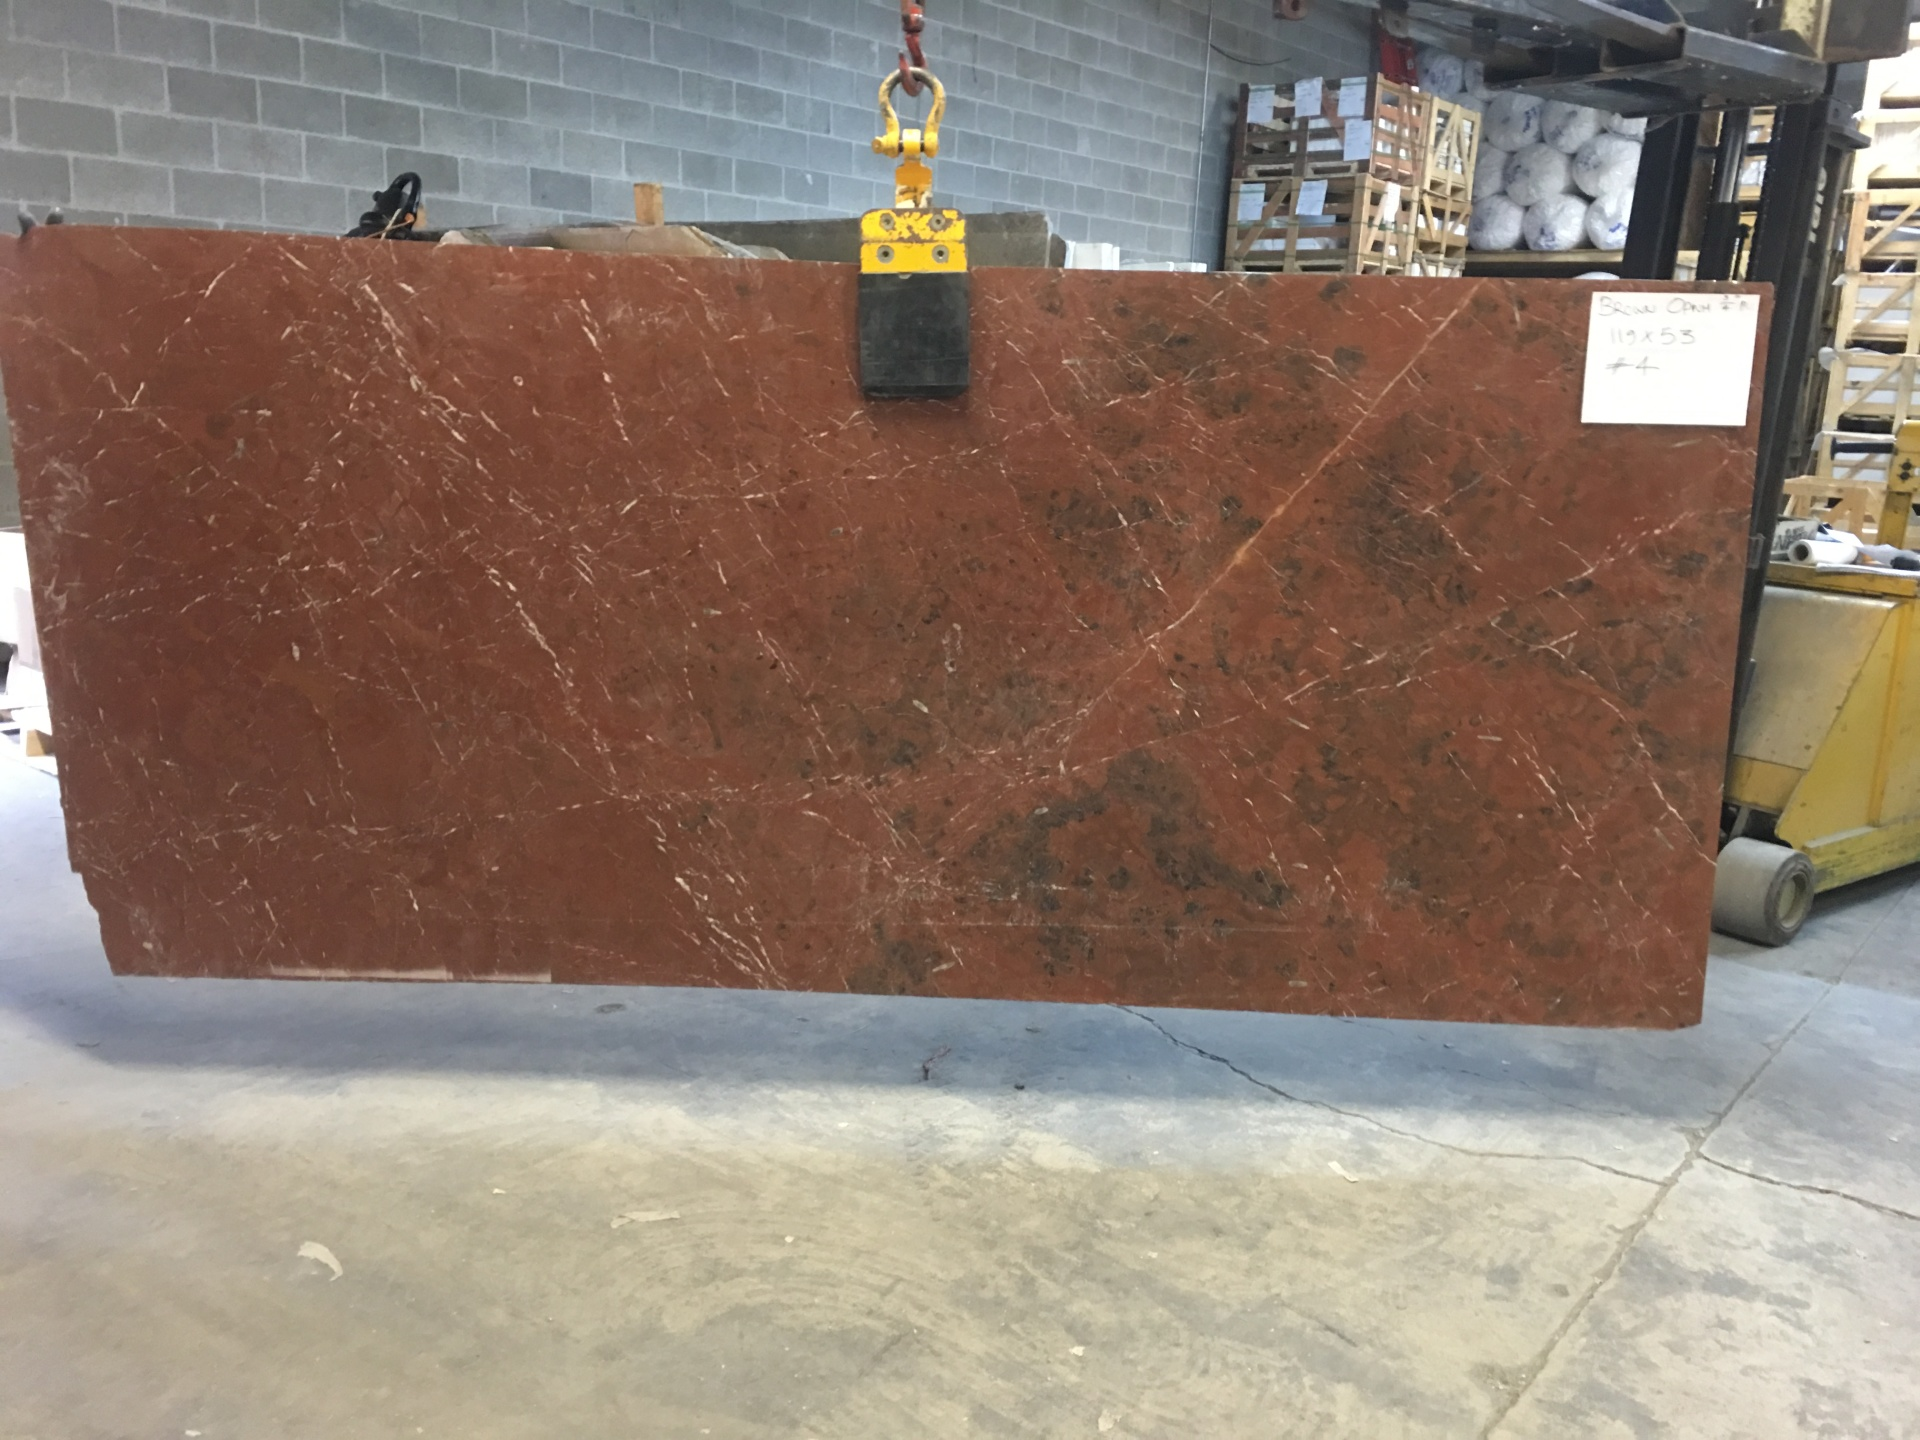 "Opium Brown 3/4"" Polished Marble Slabs  (Many Slabs Available, Please Inquire)"